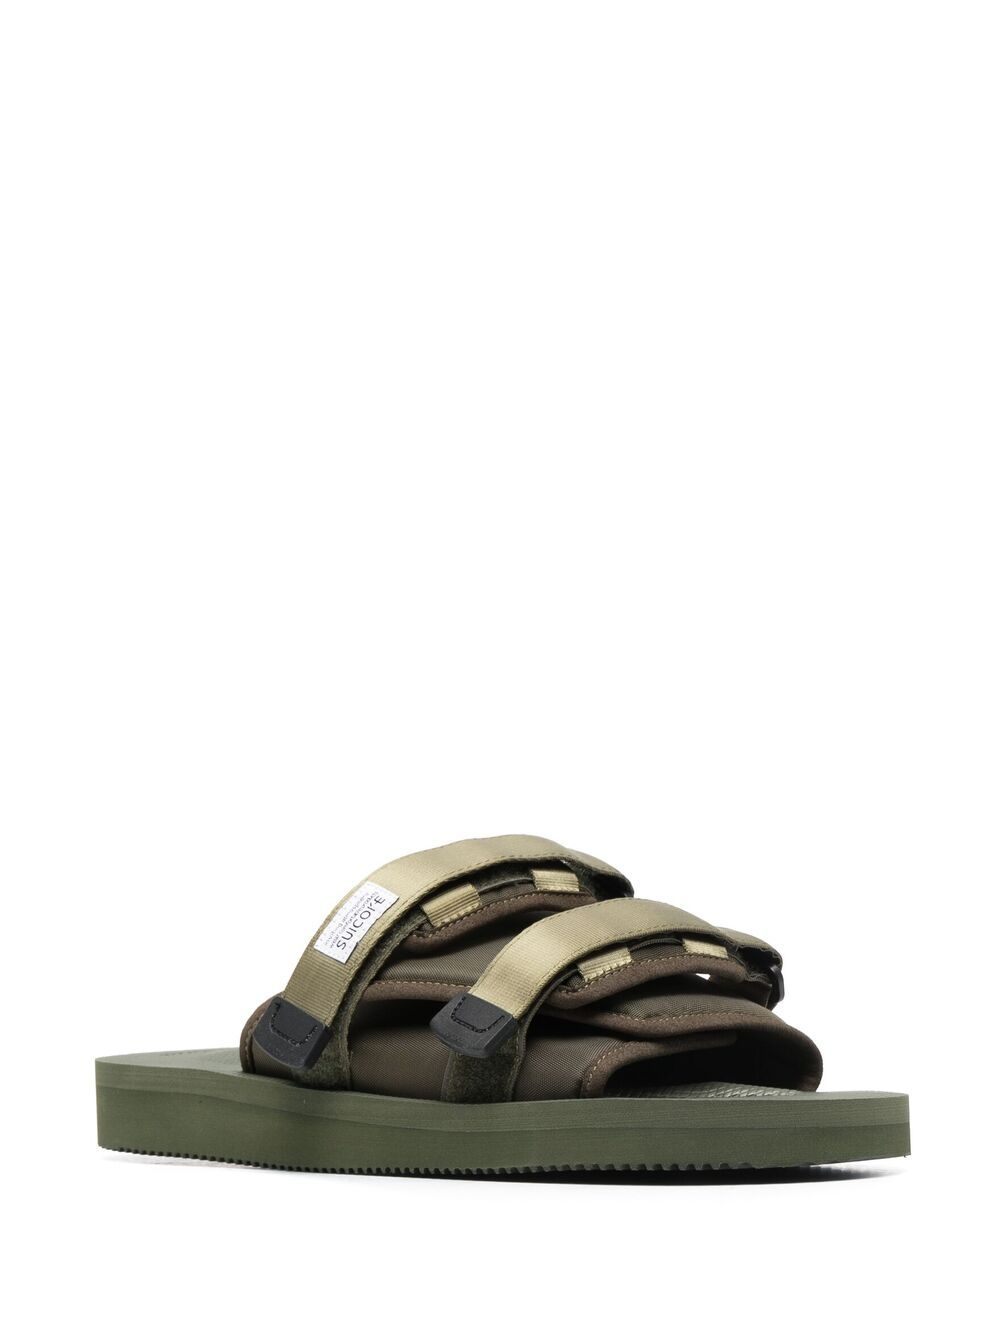 Suicoke double strap sandals man green SUICOKE | Sandals | OG-056CAB115